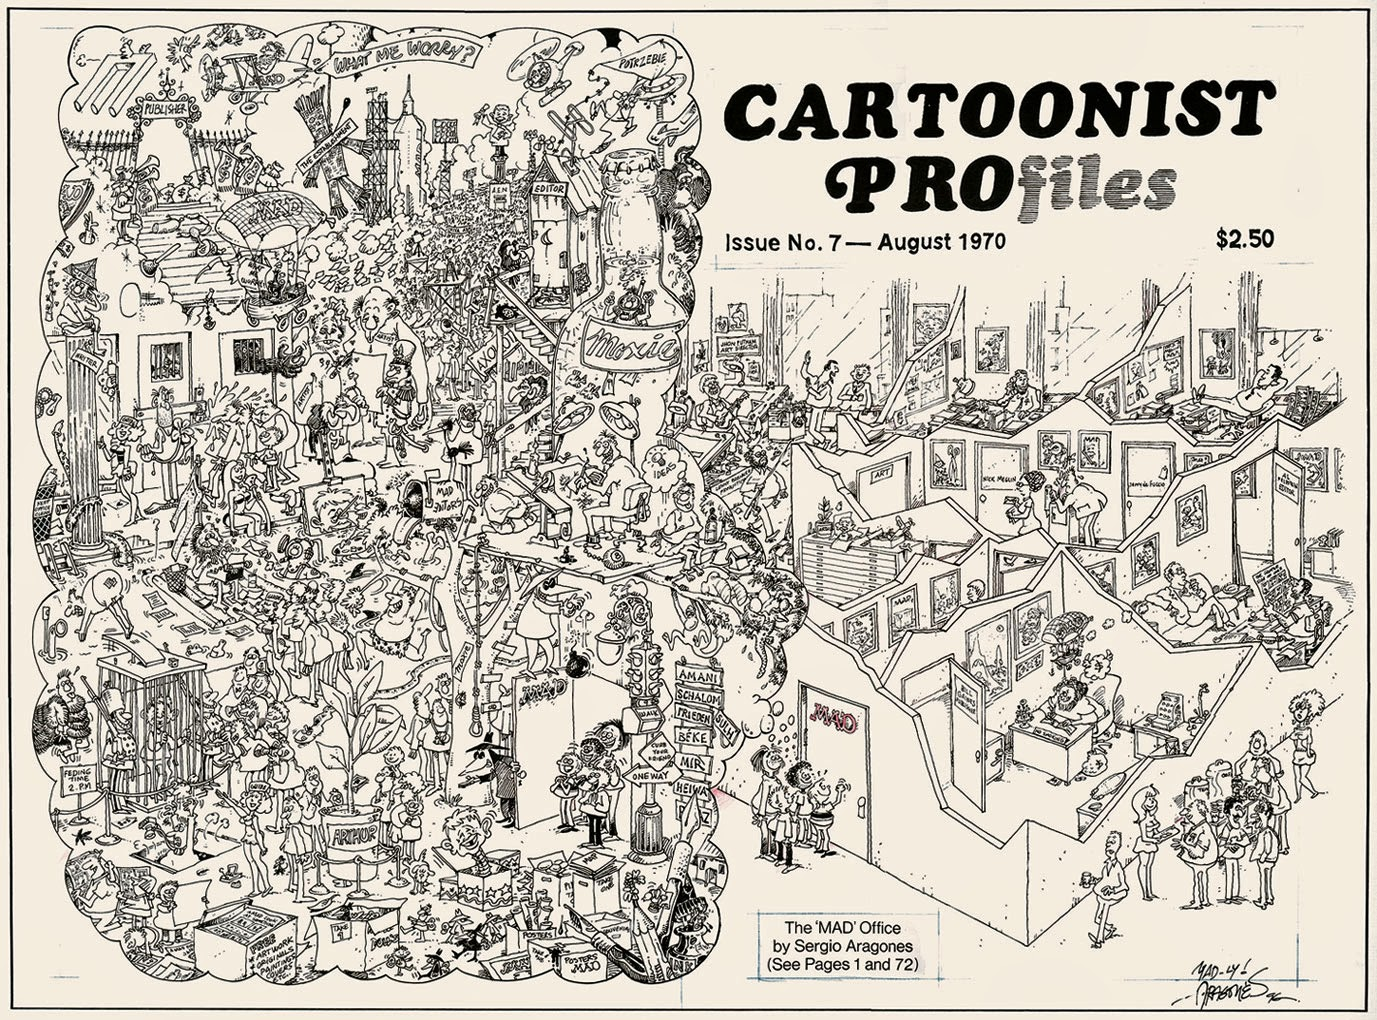 Sergio Aragones Mad office